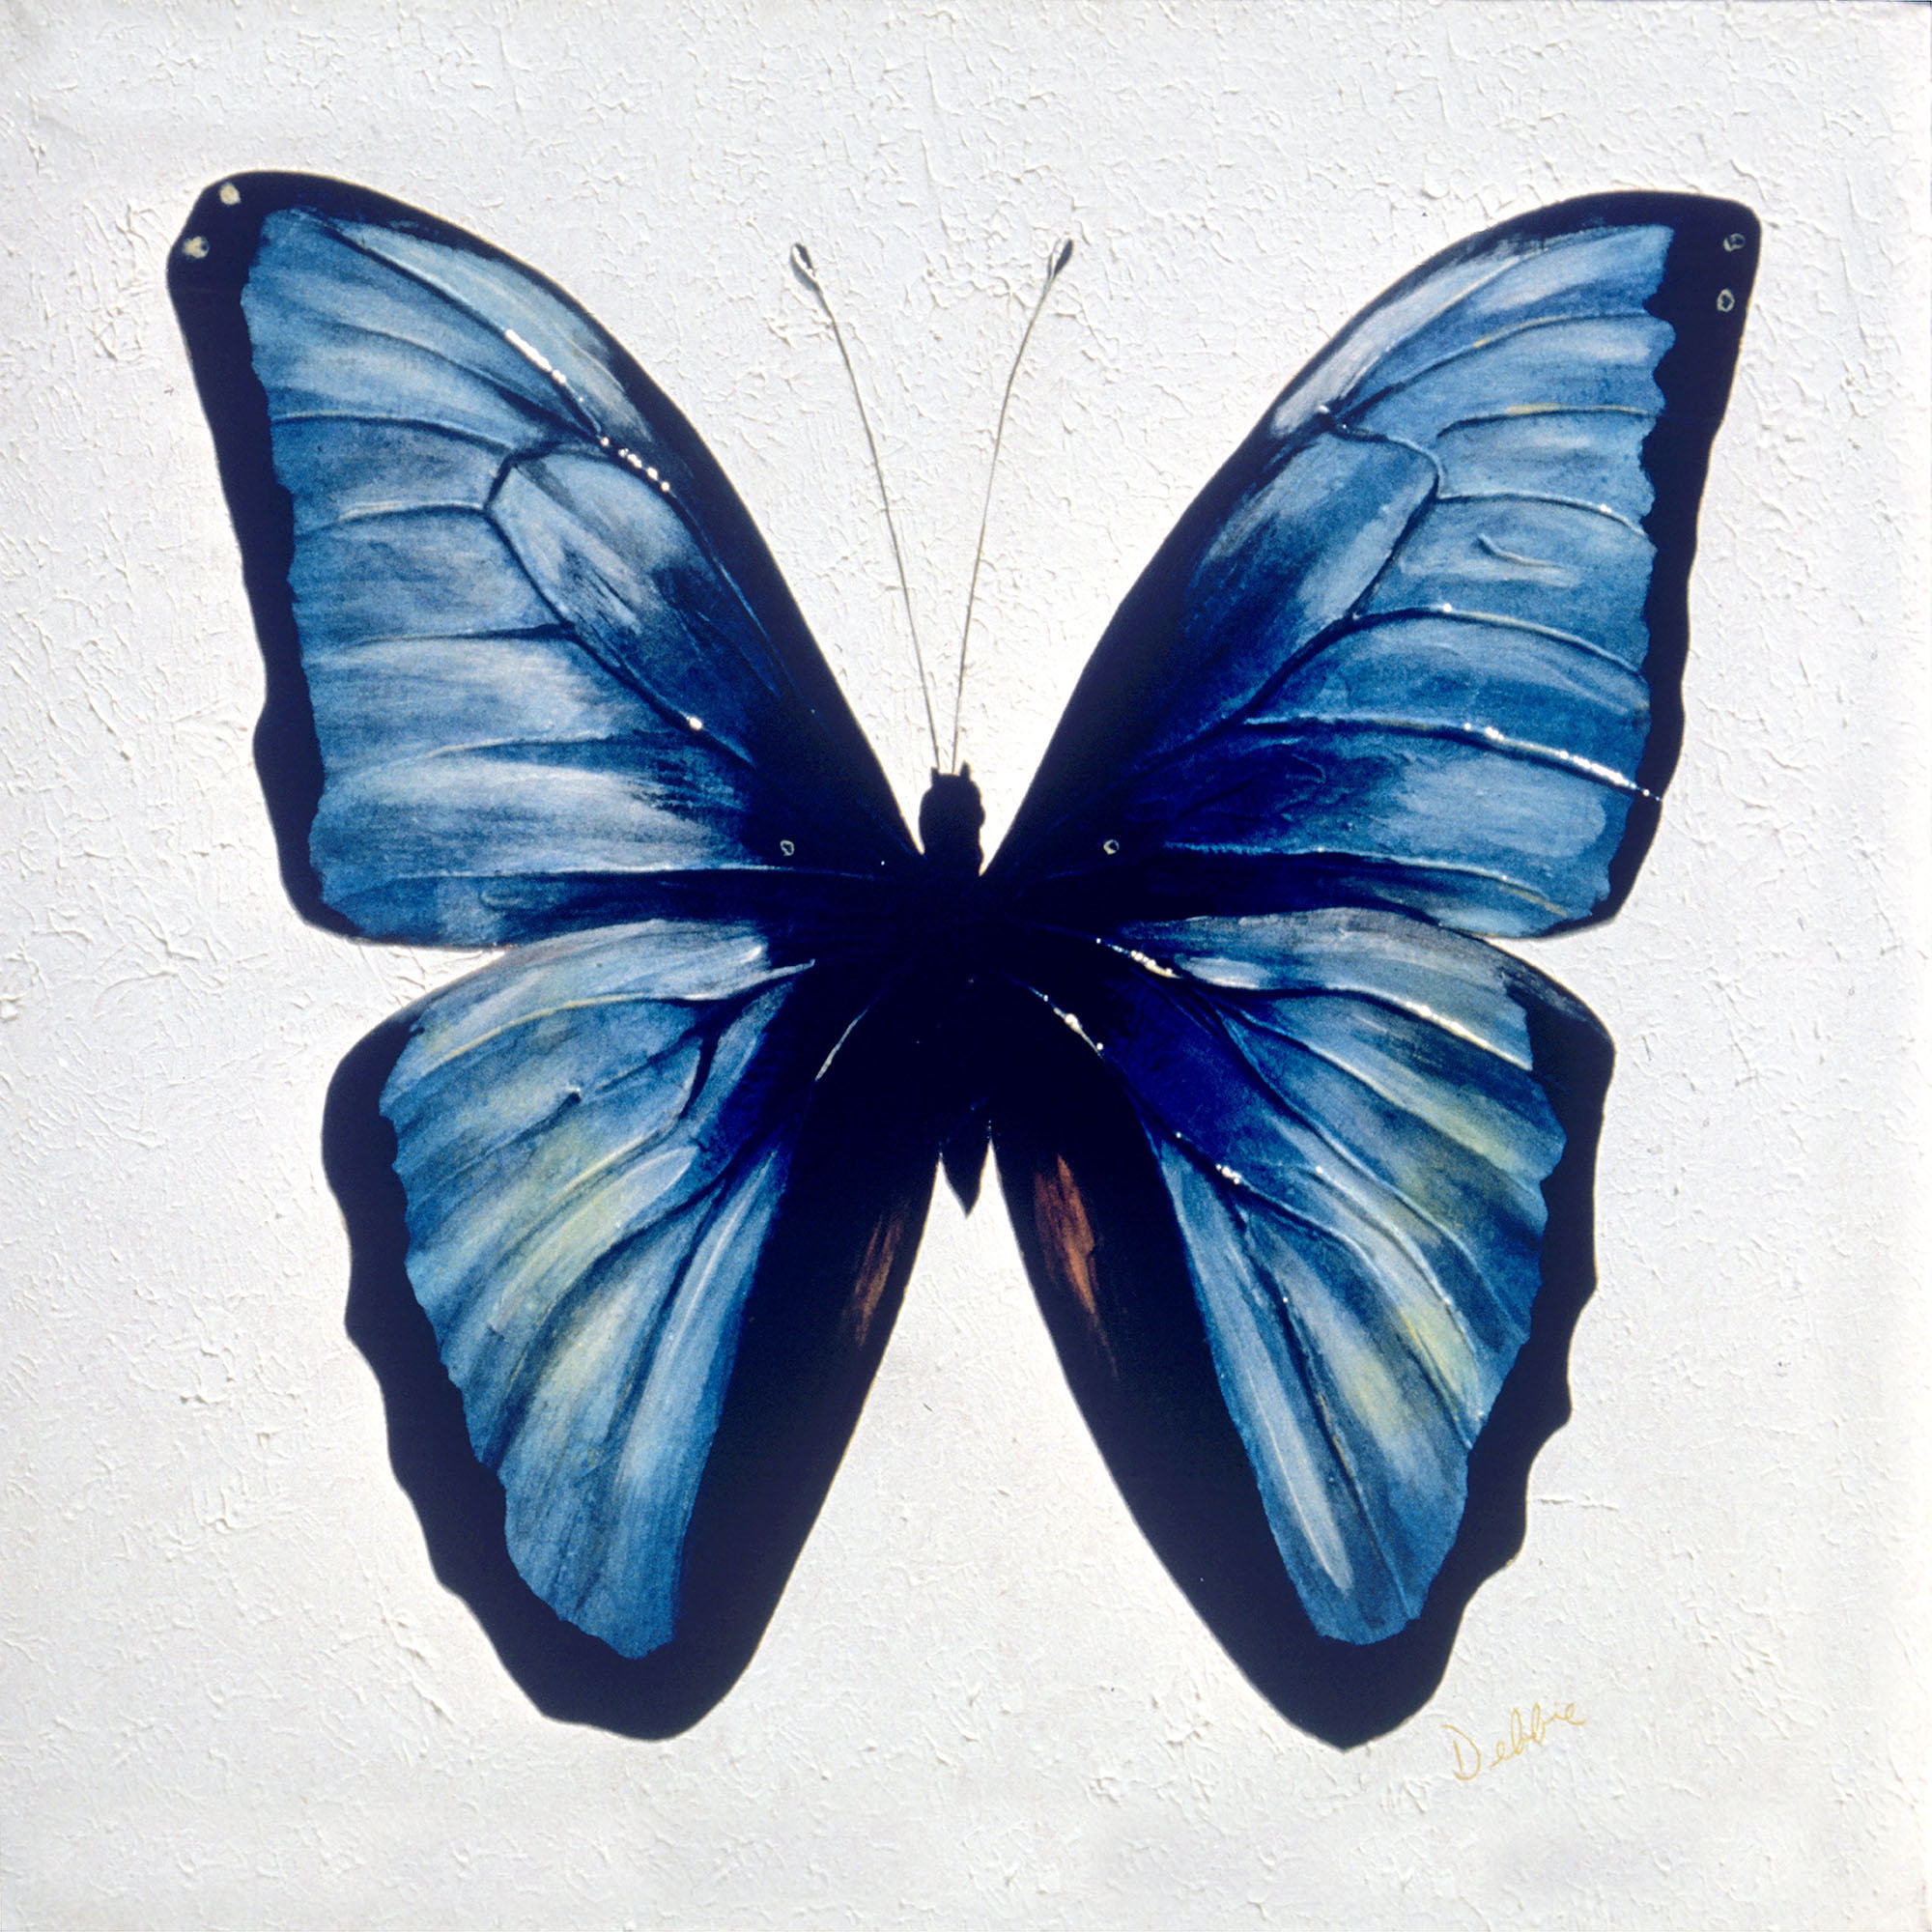 Realistic butterfly paintings - photo#8